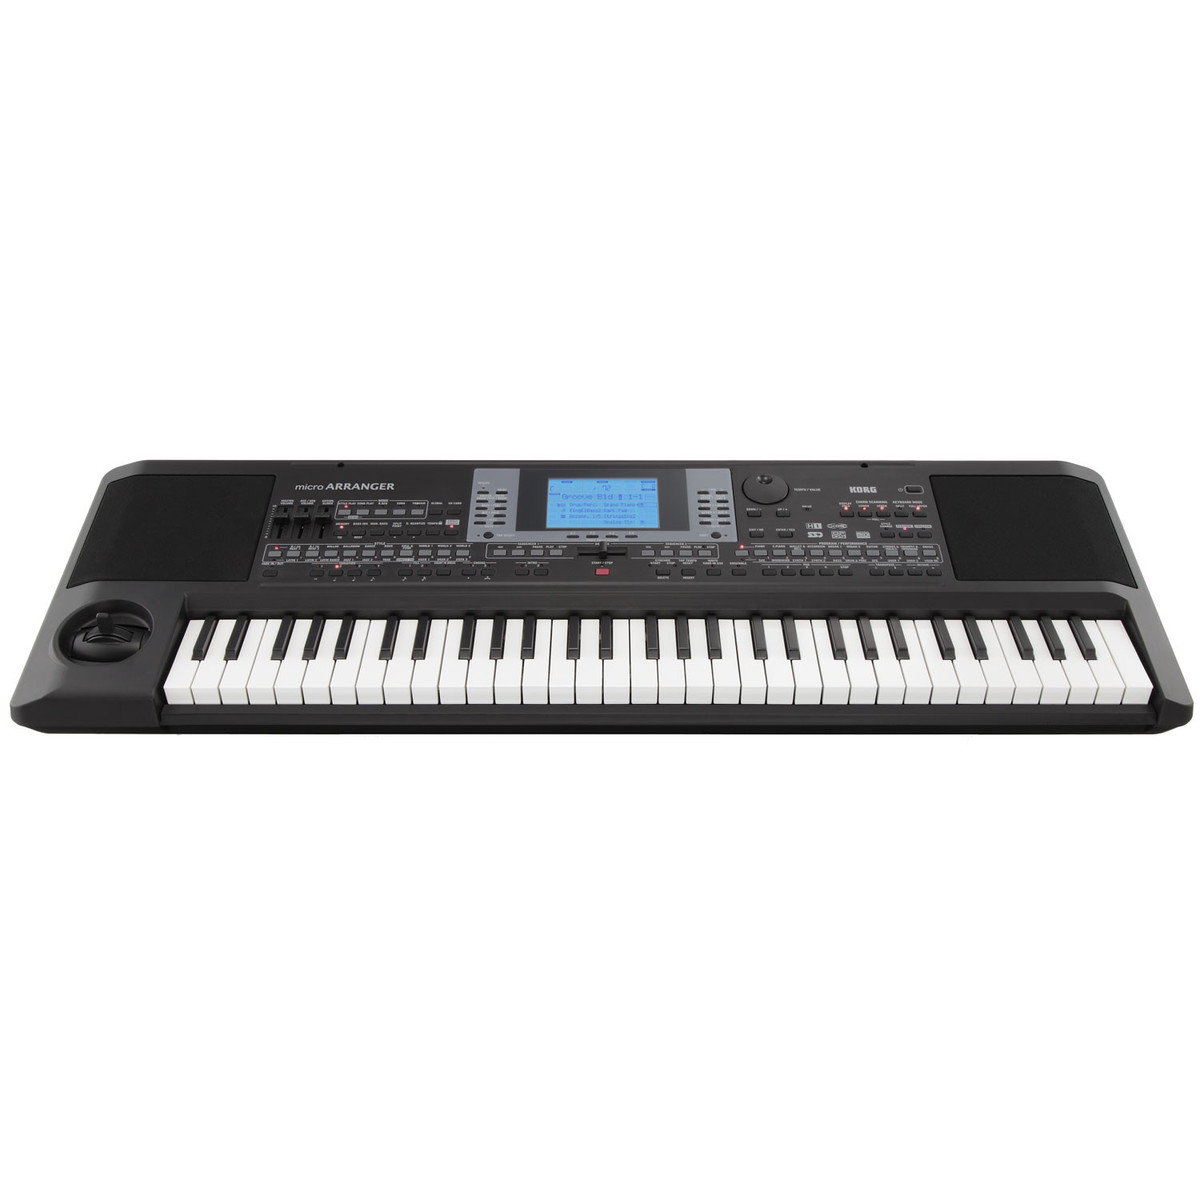 korg microarranger professional arranger keyboard b stock at rh gear4music es Training Manual for Korg microARRANGER Korg MicroStation vs microARRANGER